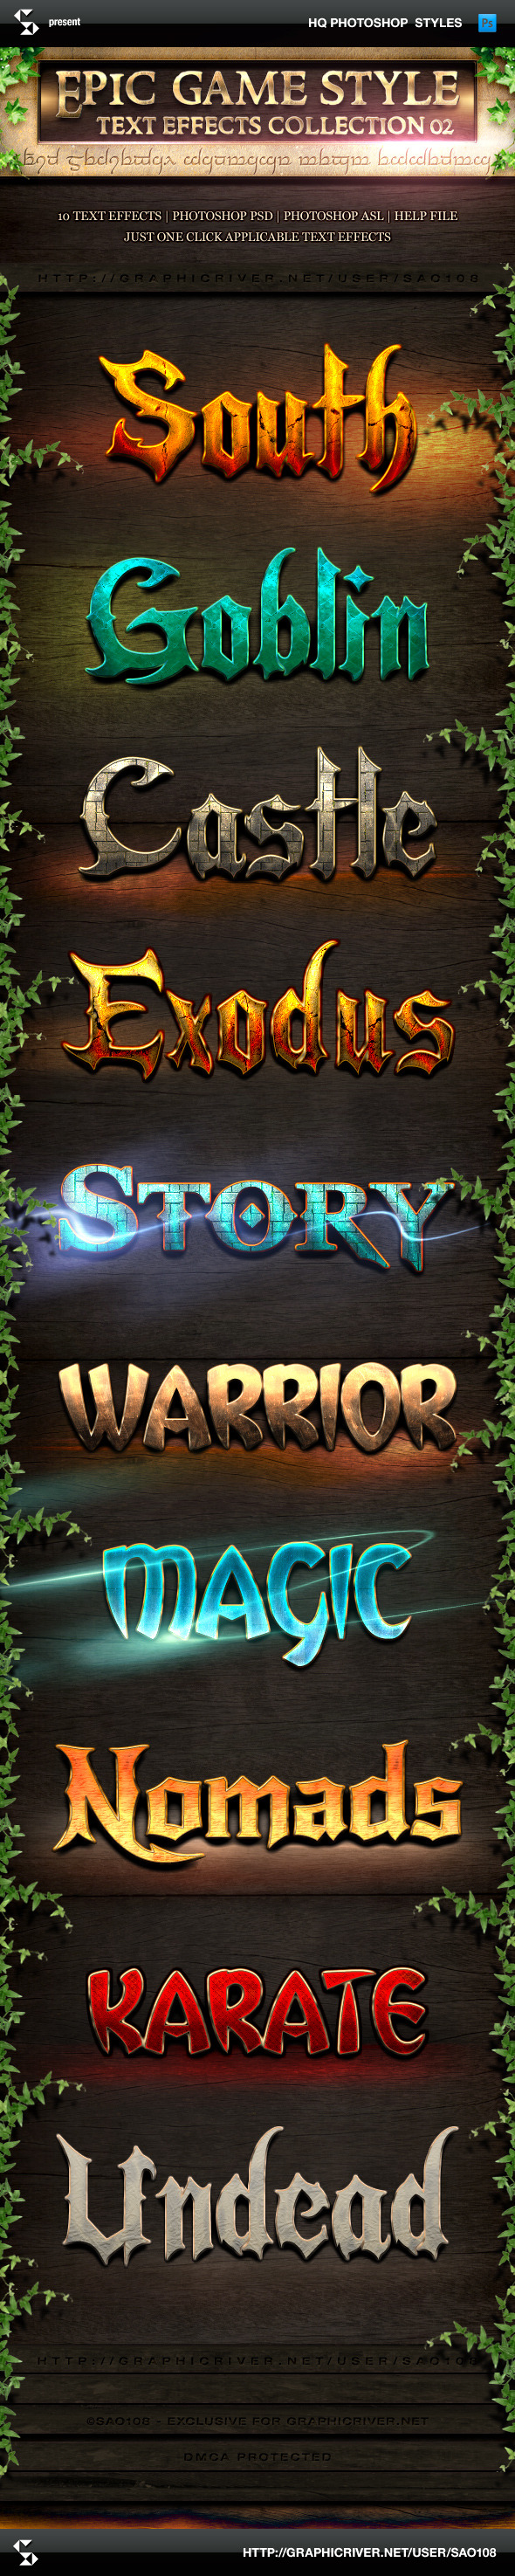 Epic Game Style Text Effects Collection 2